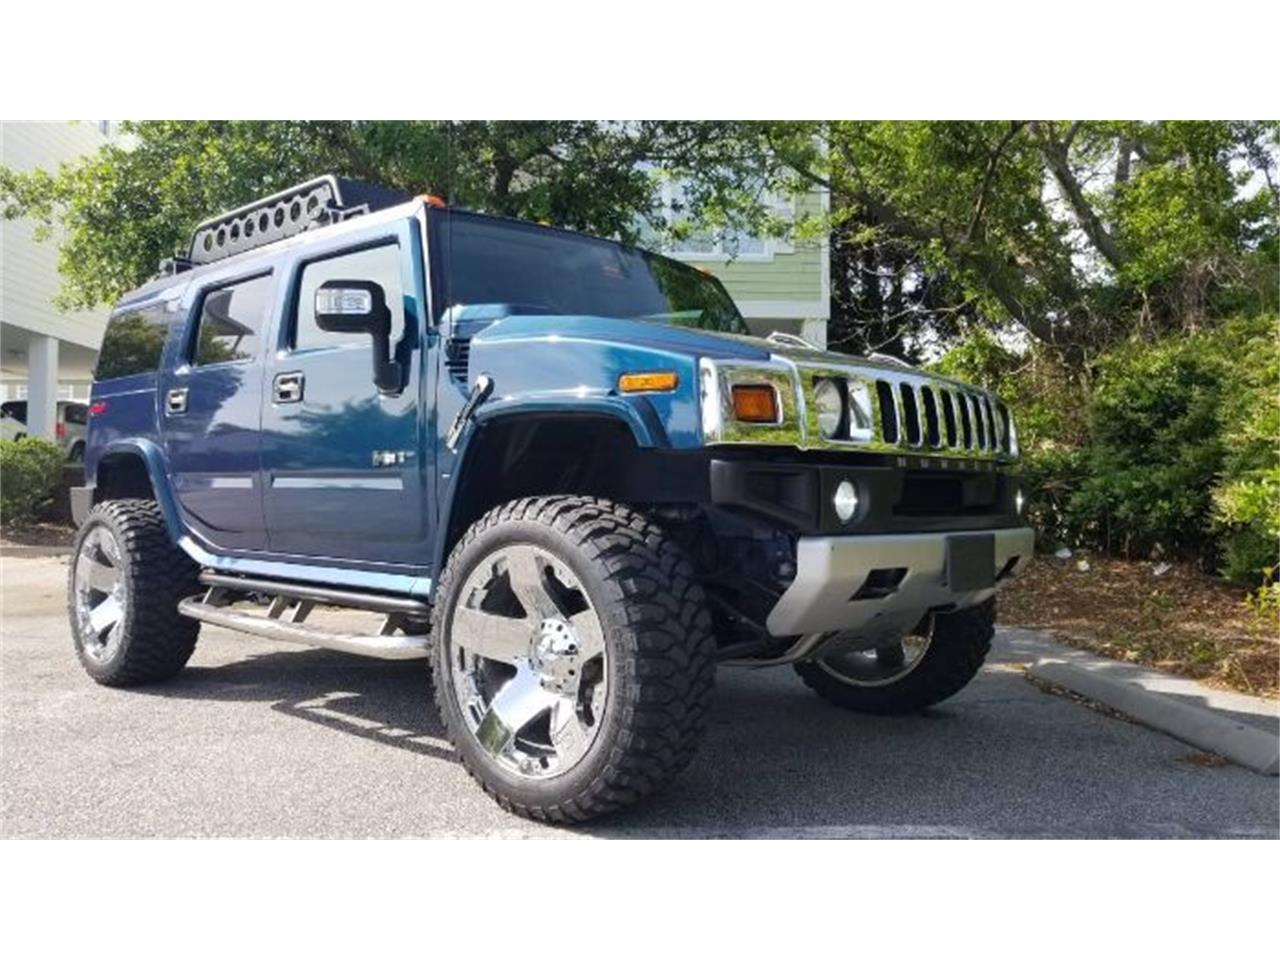 2008 Hummer H2 for sale in Cadillac, MI – photo 2